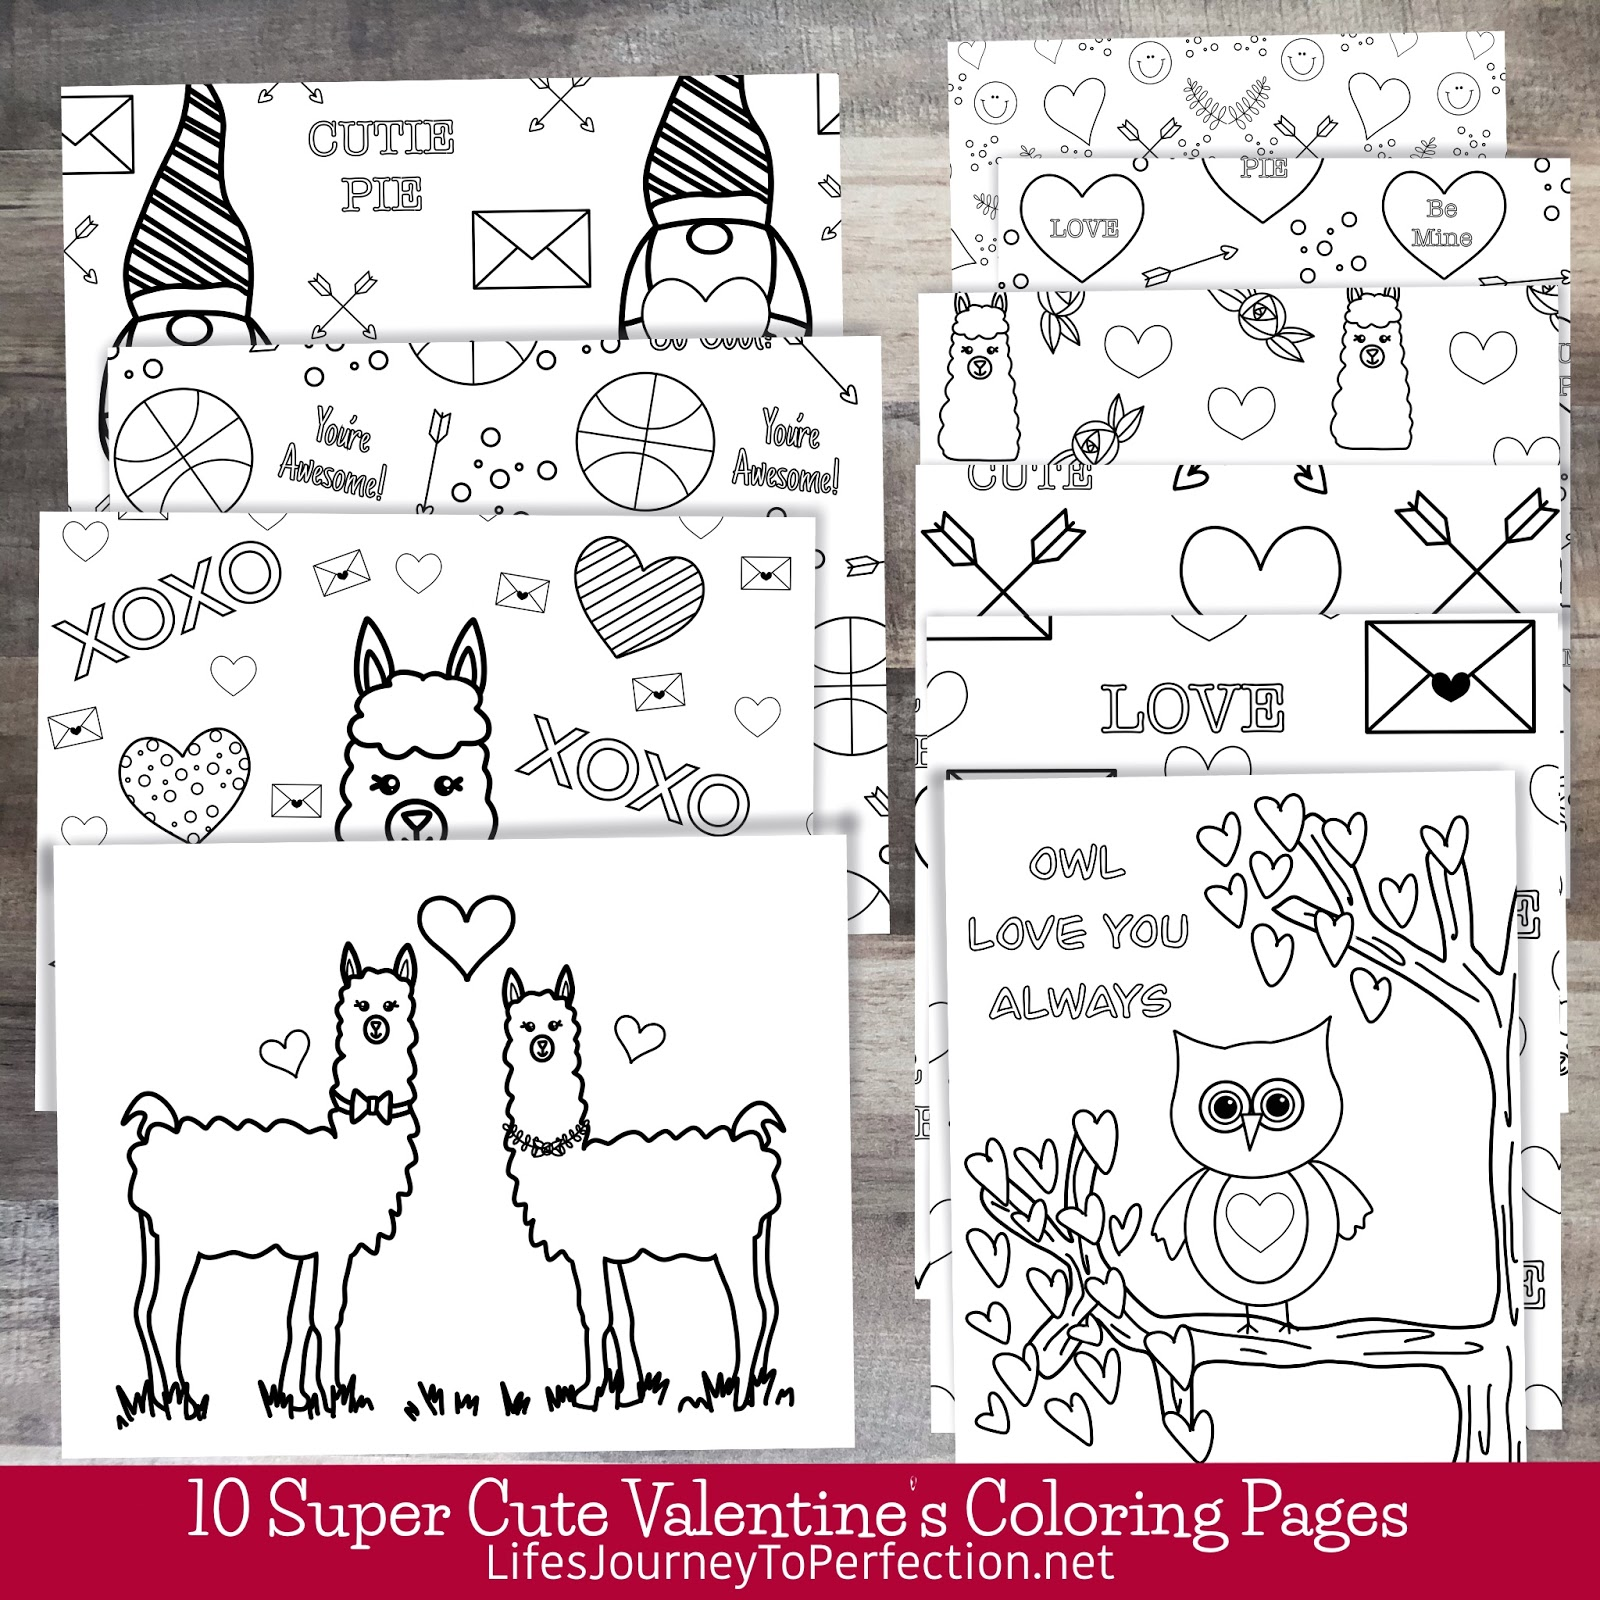 Berry Sweet Lolly And Tootsie Cutie Shopkin Coloring Page - Free ... | 1600x1600